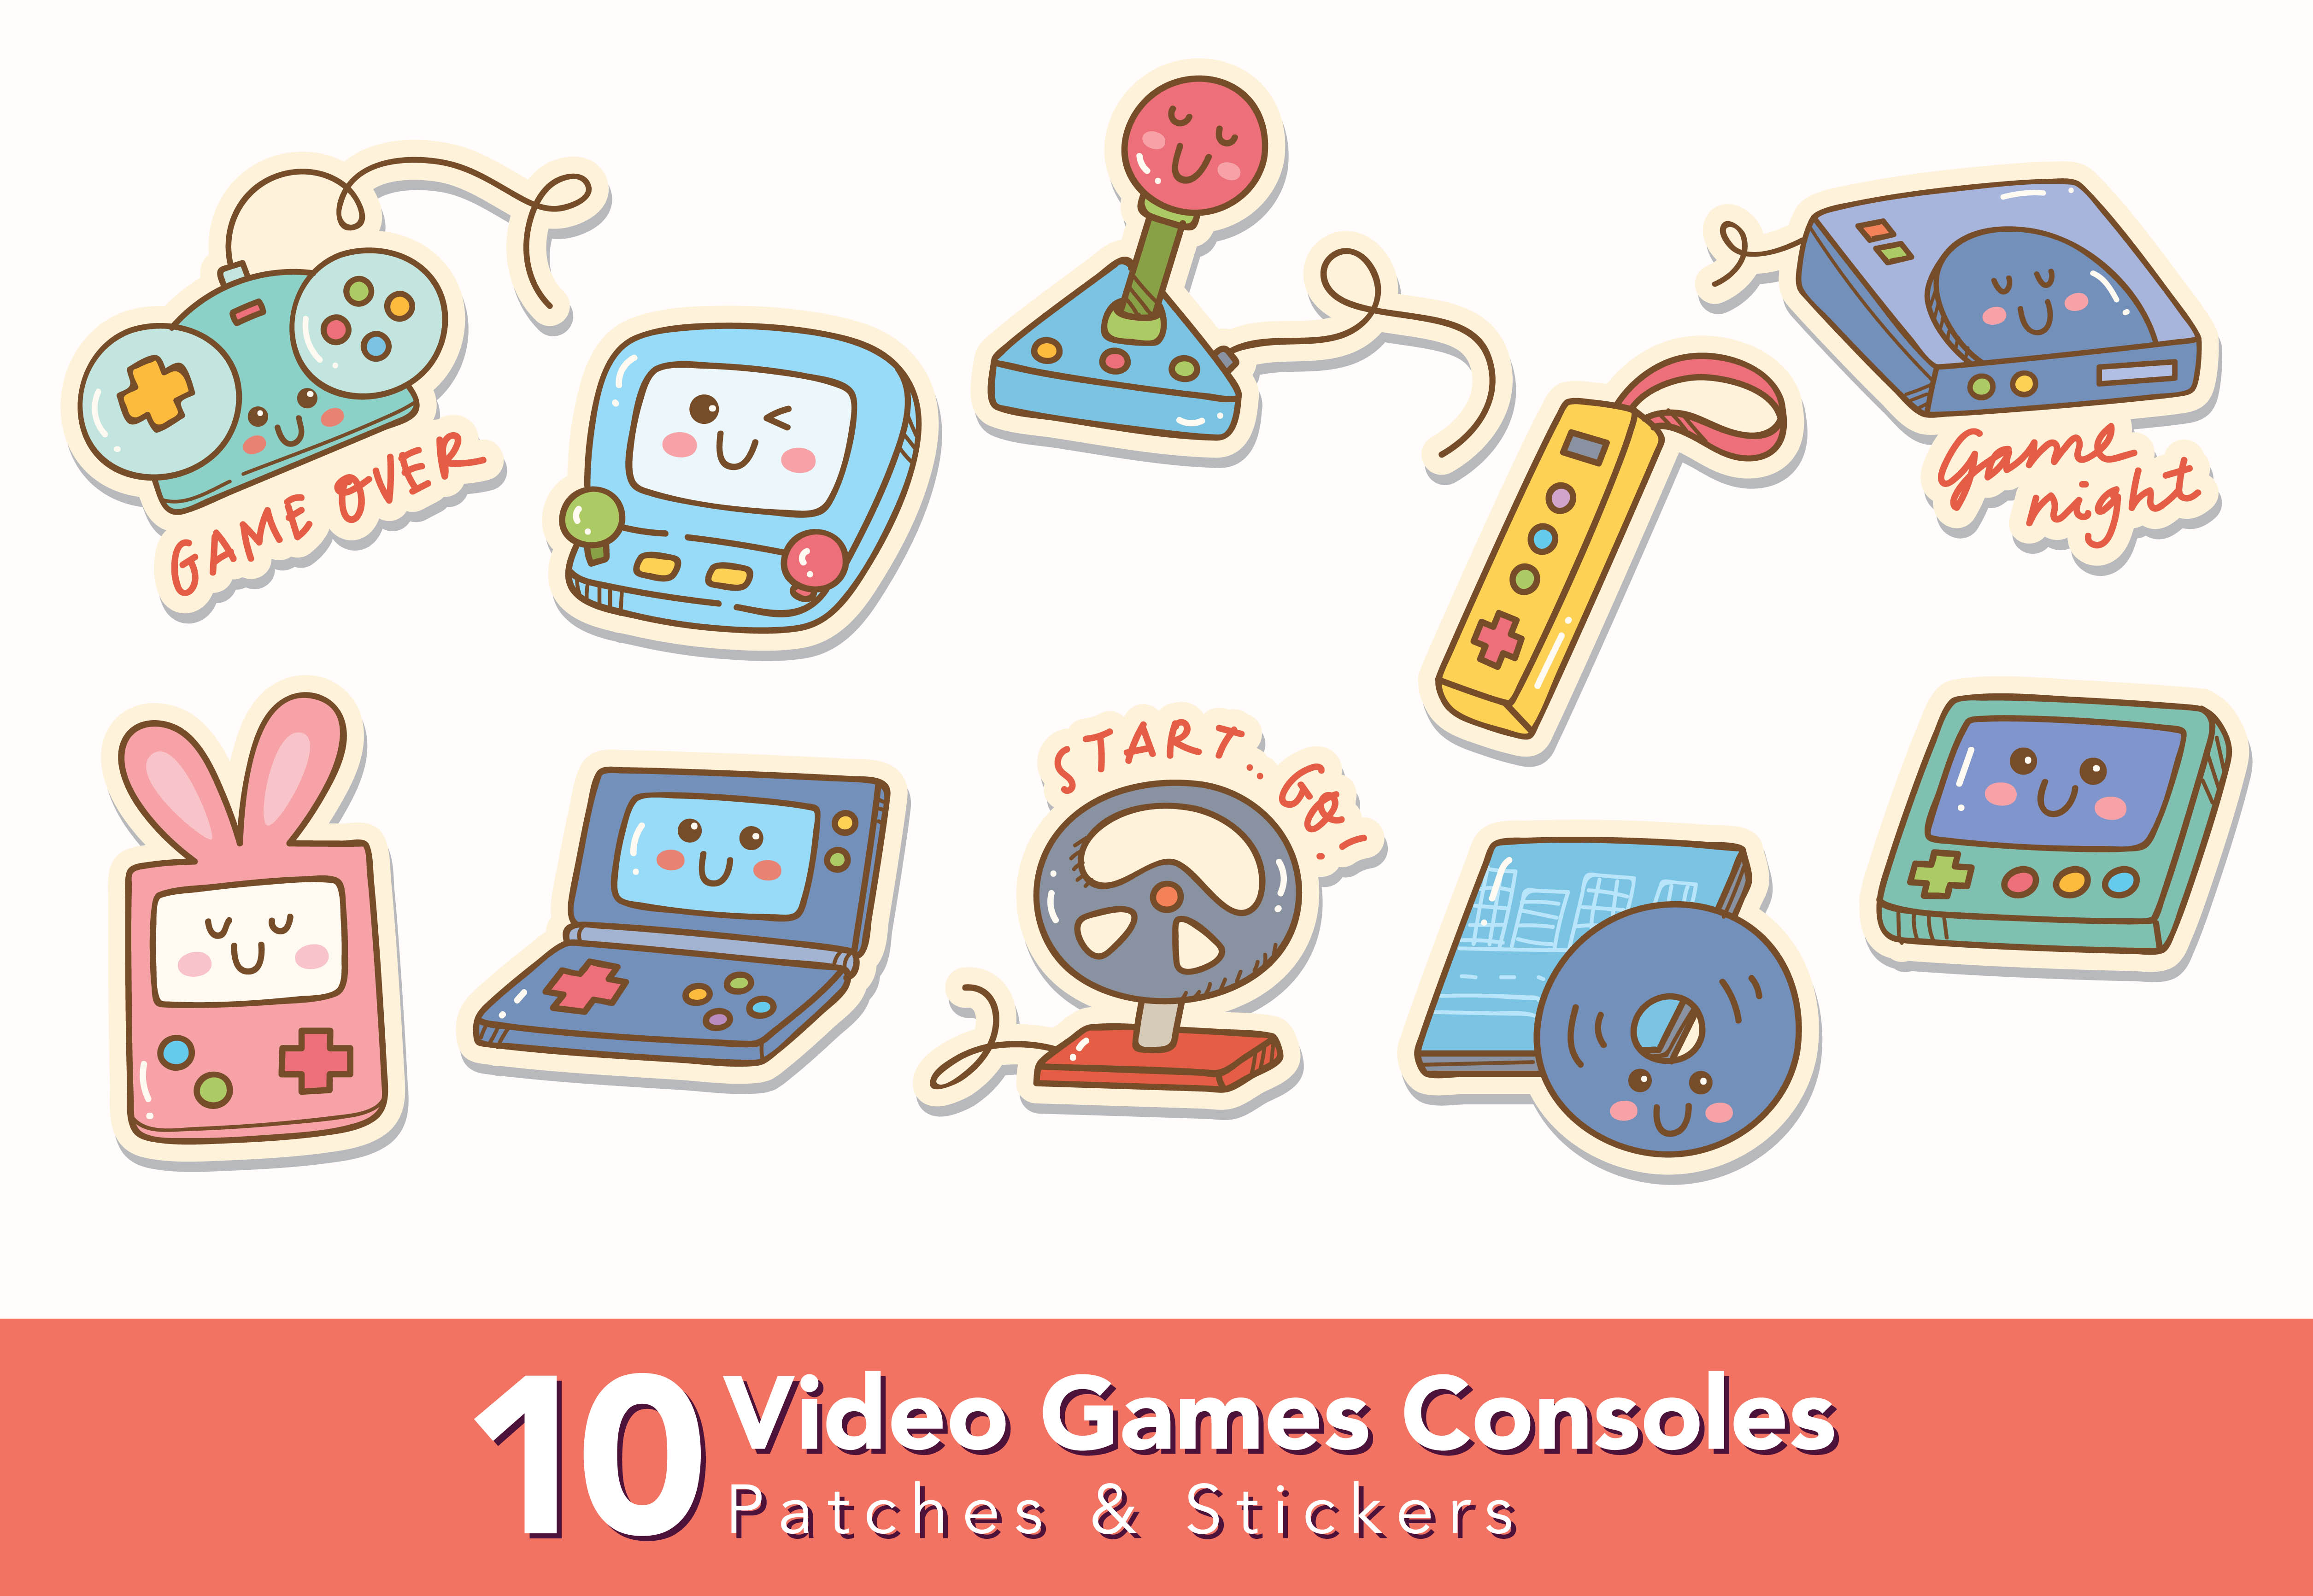 Download Free Set Of Video Games Consoles Doodle Graphic By Big Barn Doodles for Cricut Explore, Silhouette and other cutting machines.